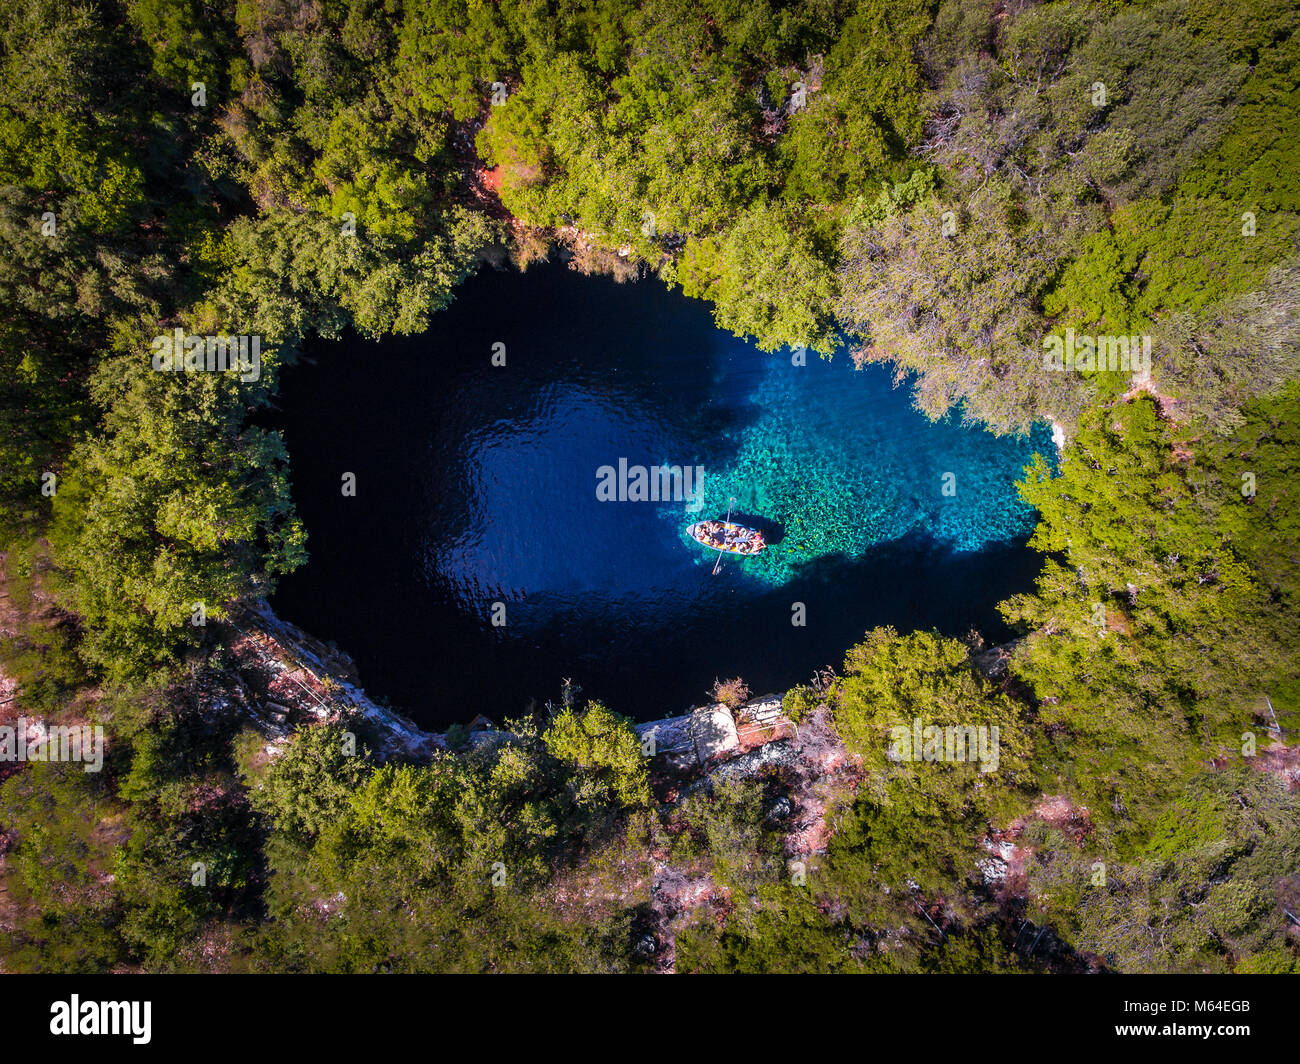 Melissani Cave Kefalonia viewed from above with tourists entering the cave by boat - Stock Image